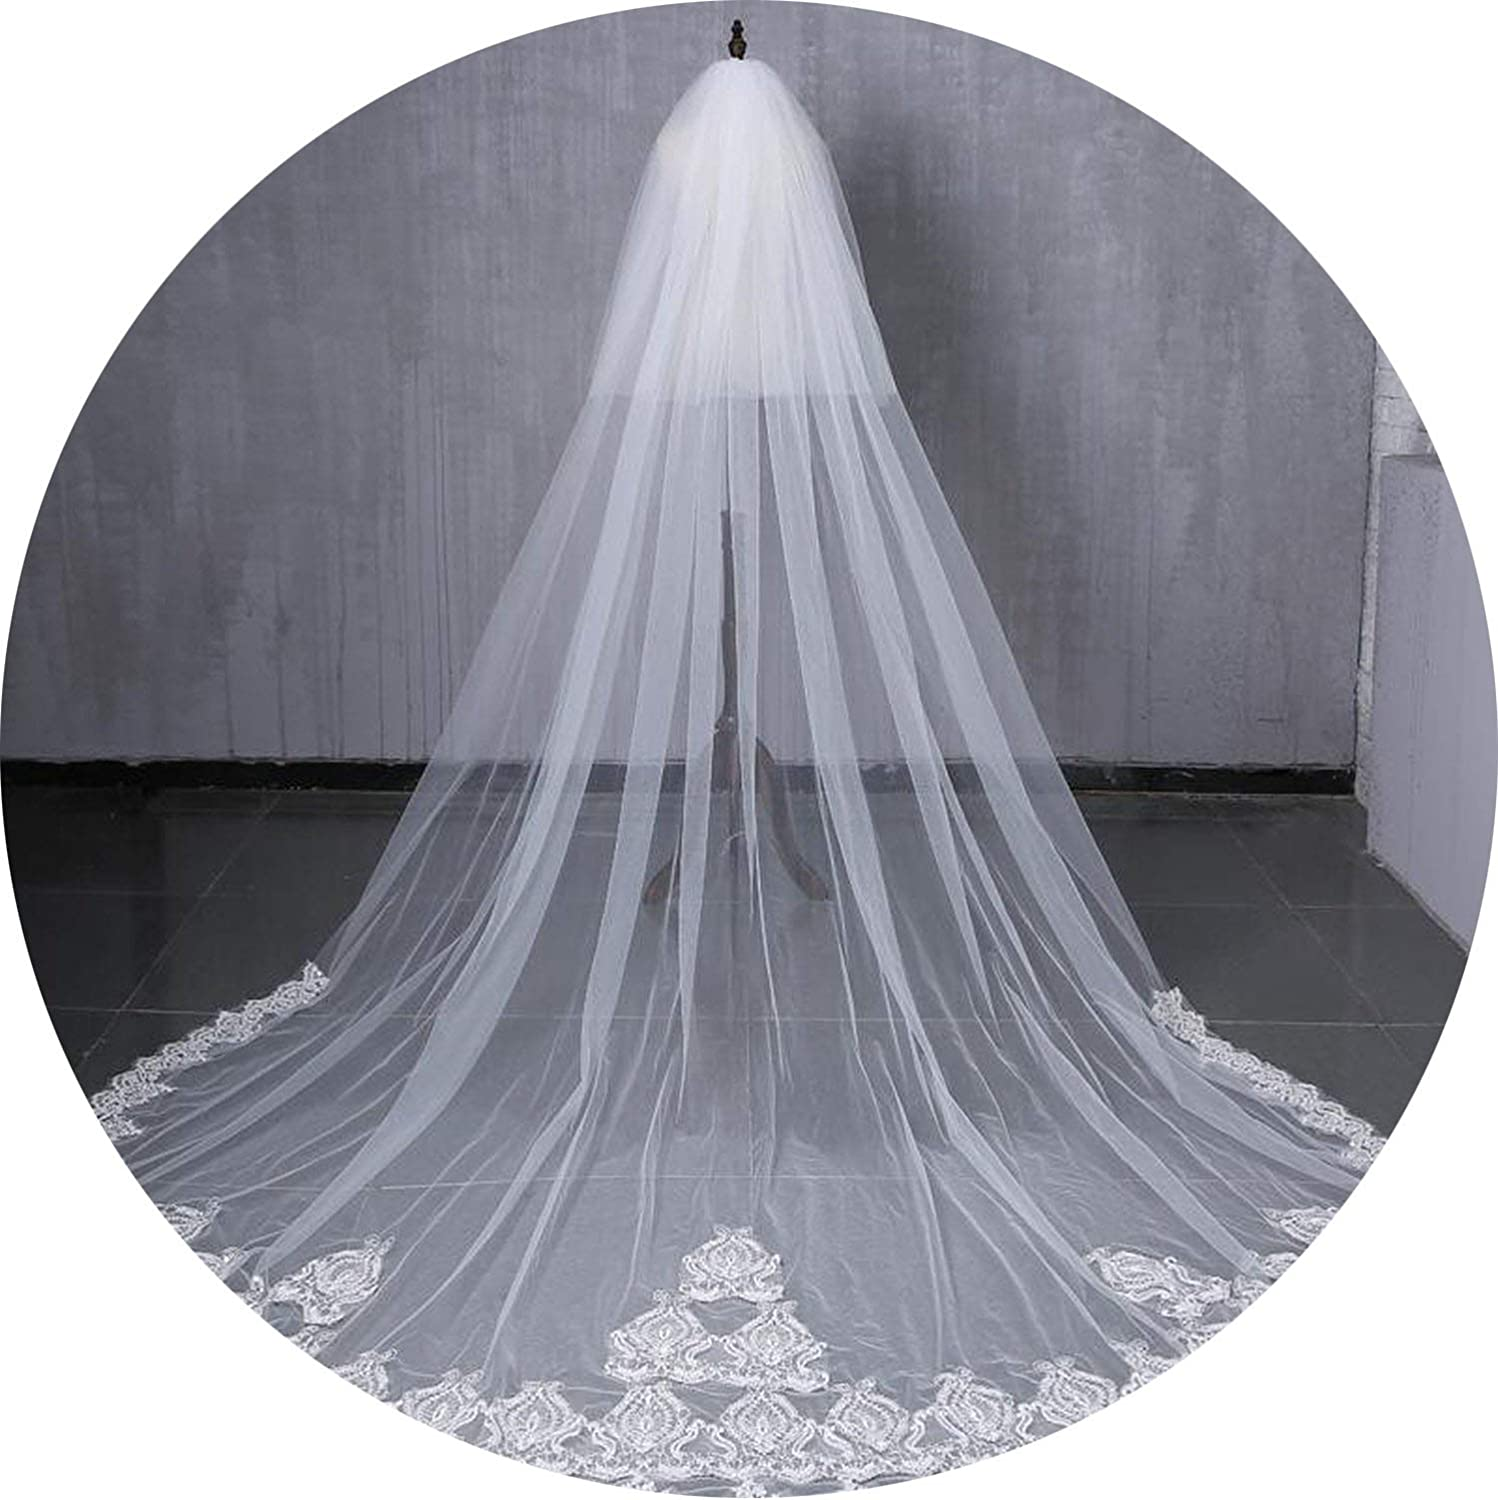 2019 Designed Bridal Veils Lace Appliques TwoLayer Amazing Wedding Veils Bridal Accessories With Combs,Ivory,300Cm